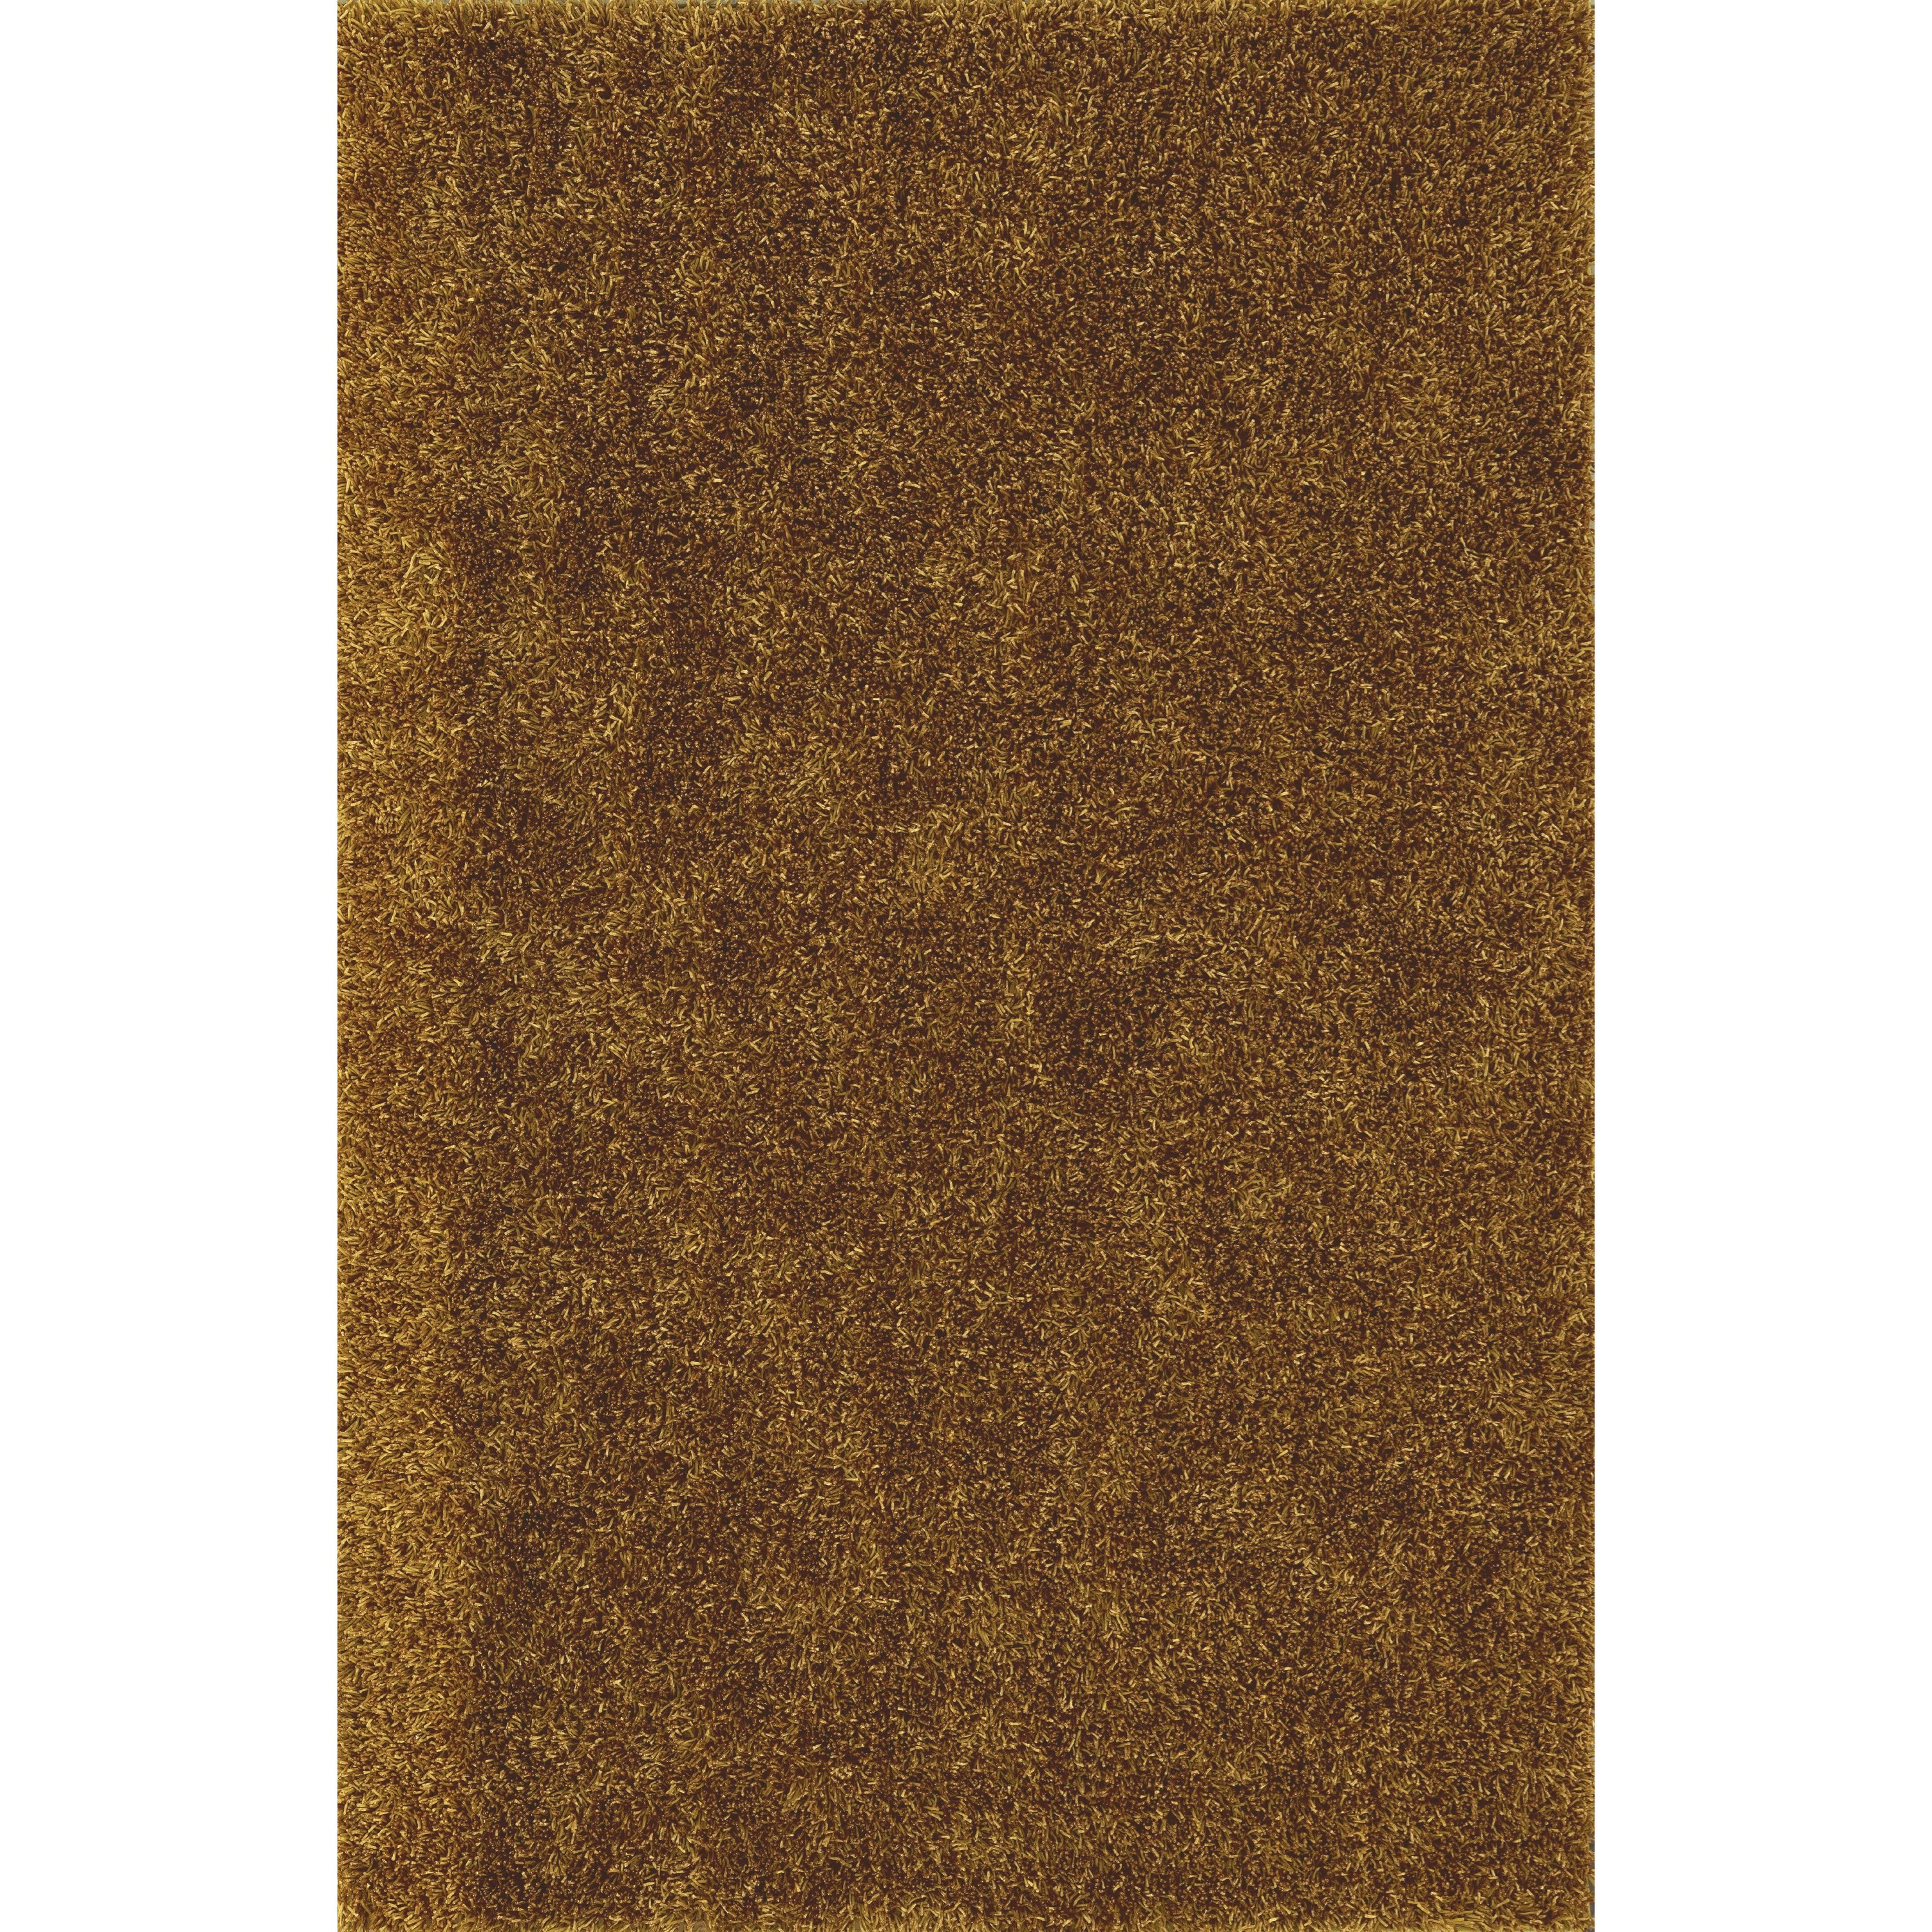 Dalyn Illusions Gold 8'X10' Rug - Item Number: IL69GO8X10